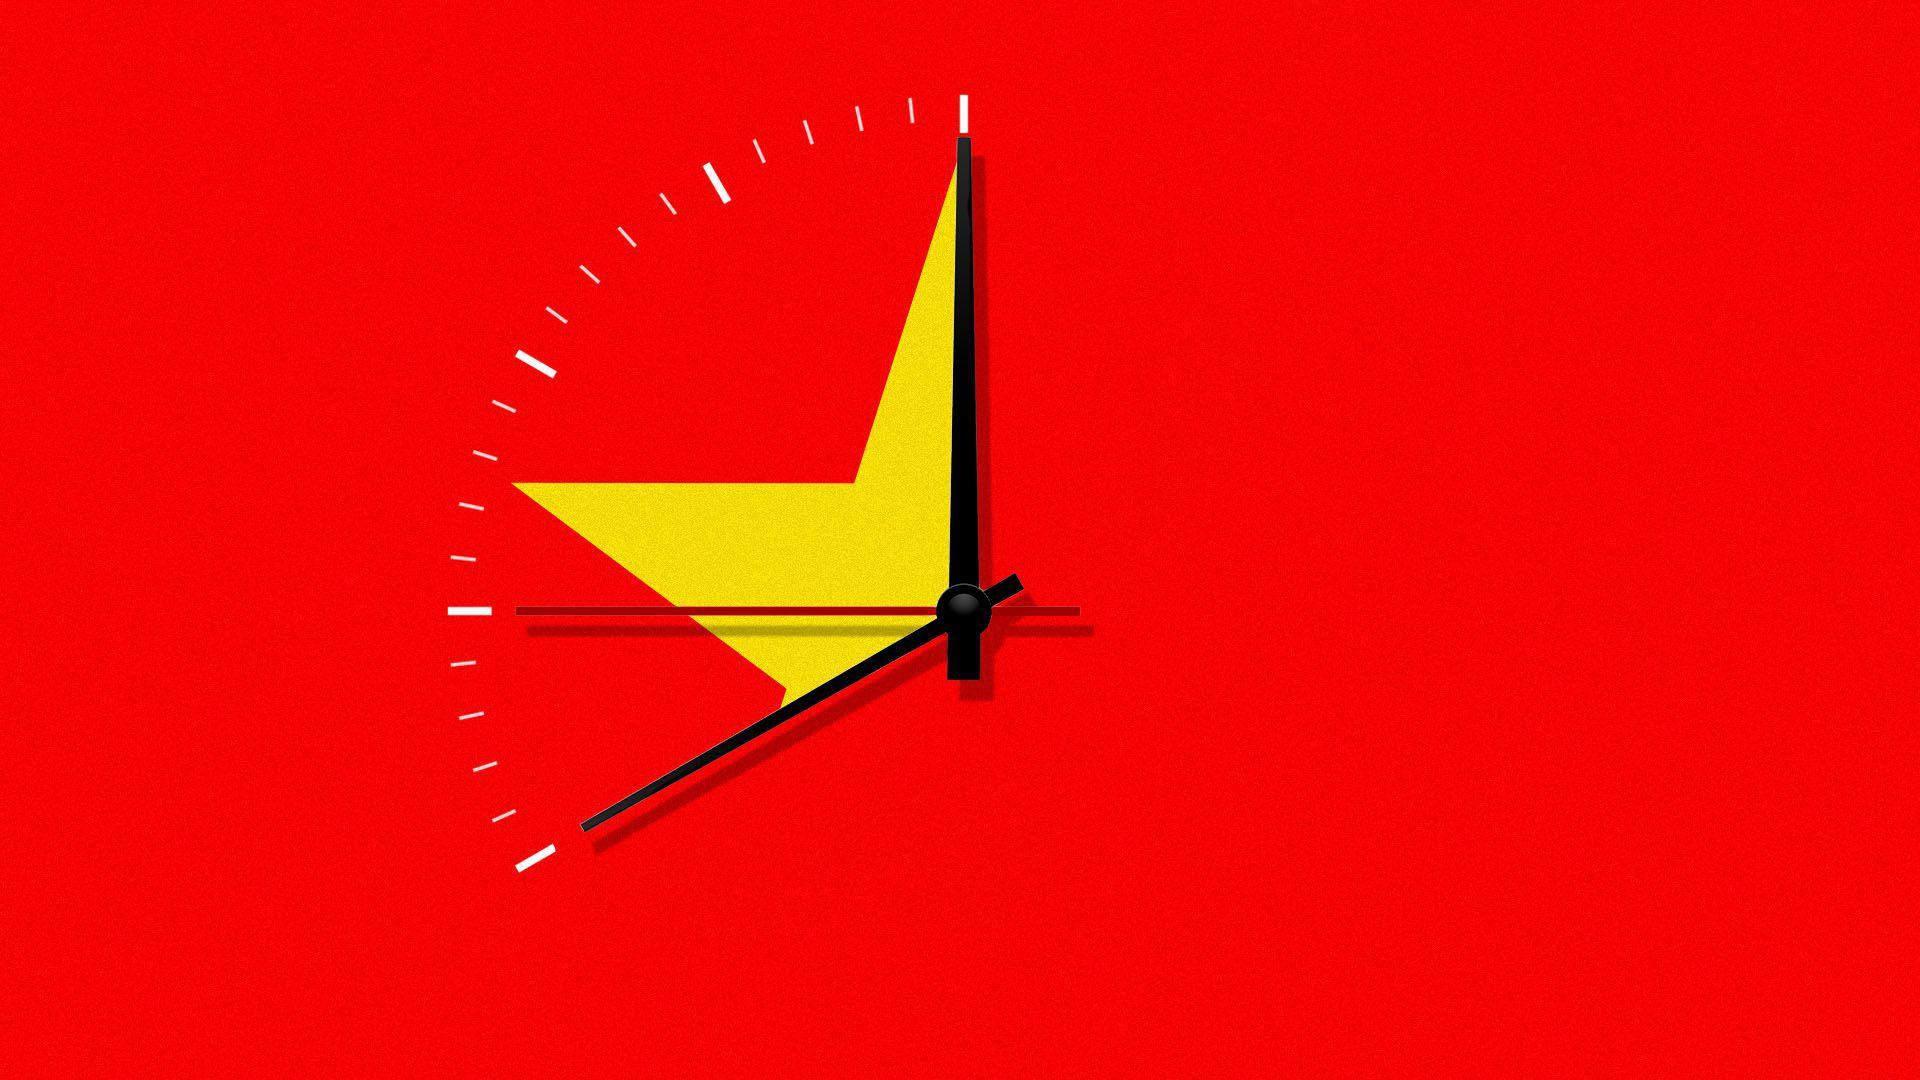 Chinese flag as a clock face.